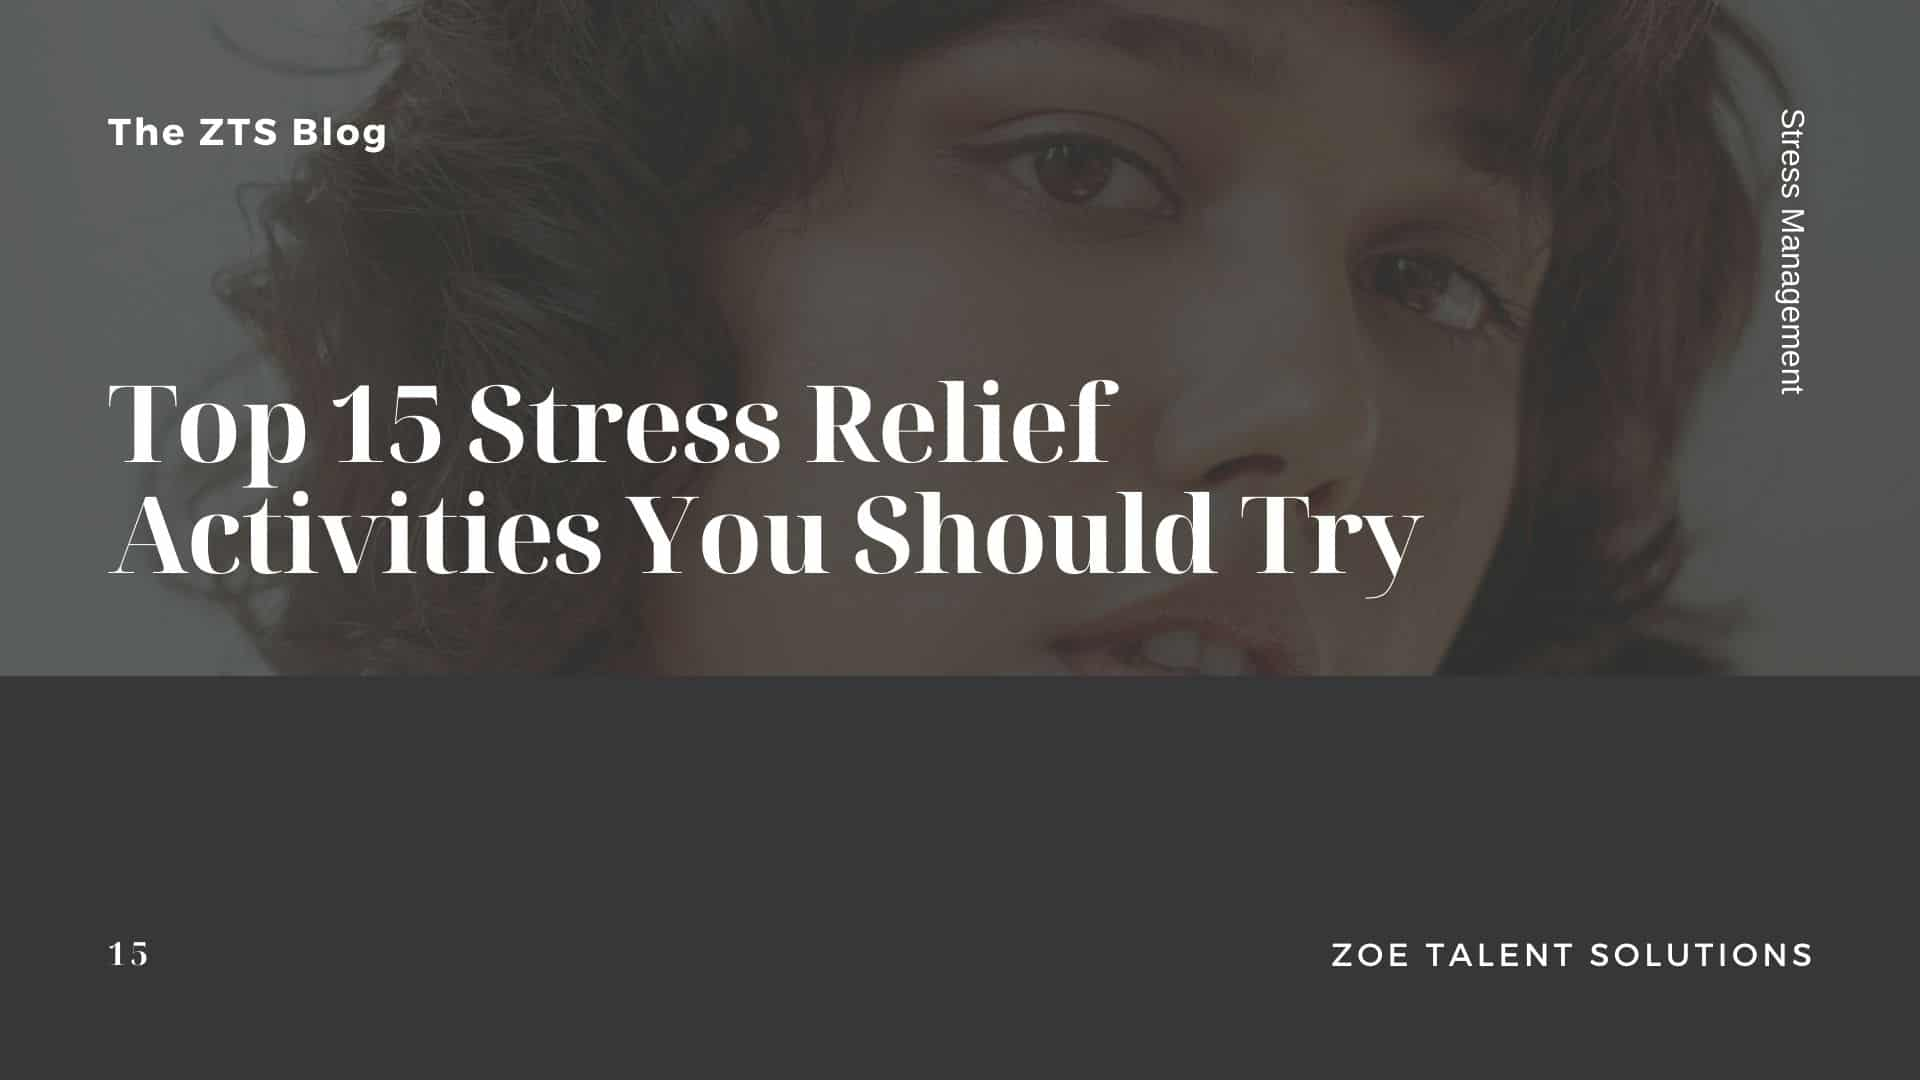 Top 15 Stress Relief Activities You Should Try